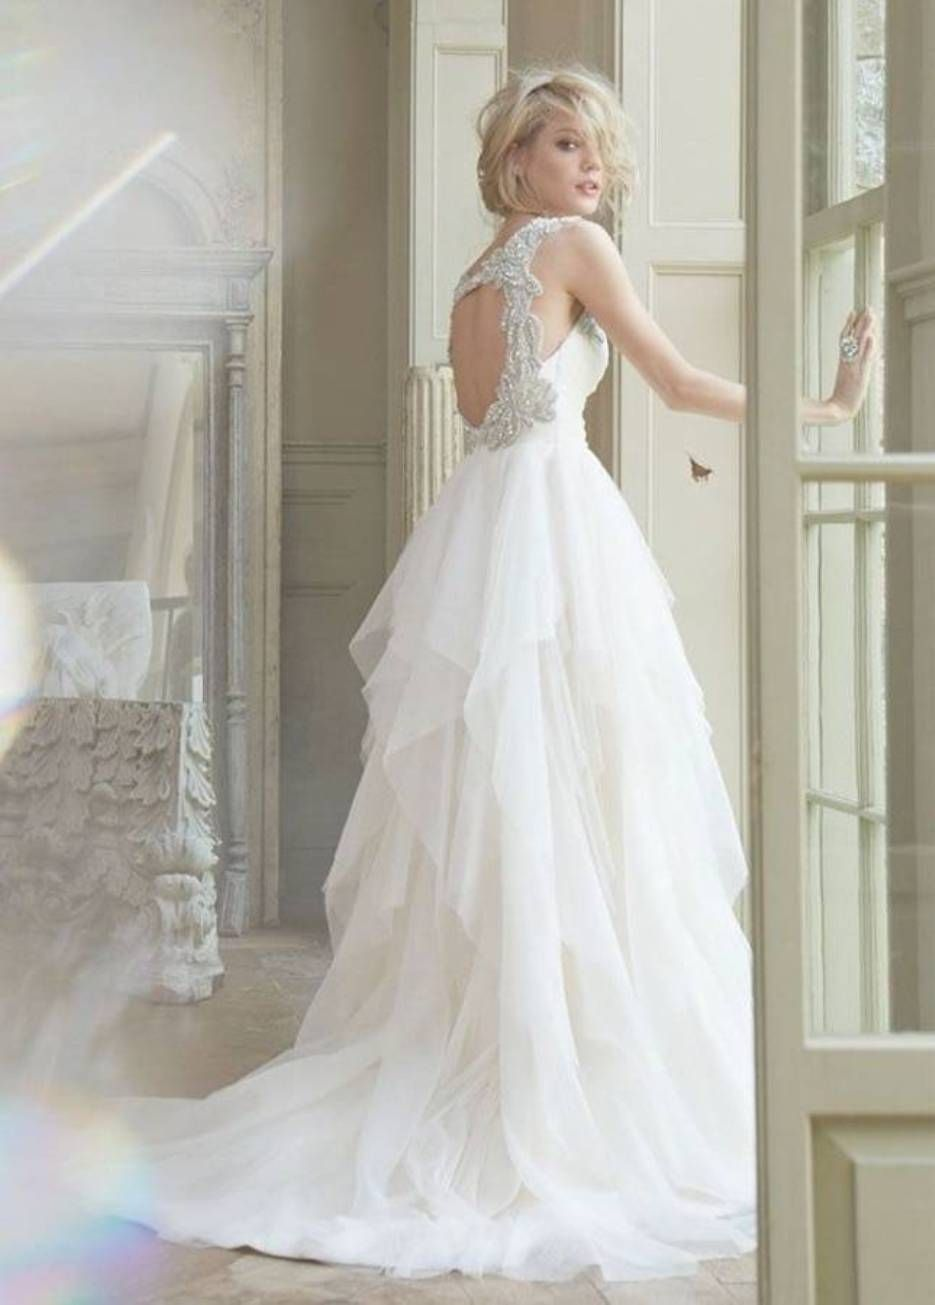 Retro wedding dress  Adorable Vintage Wedding Dress Vintage Wedding Dresses